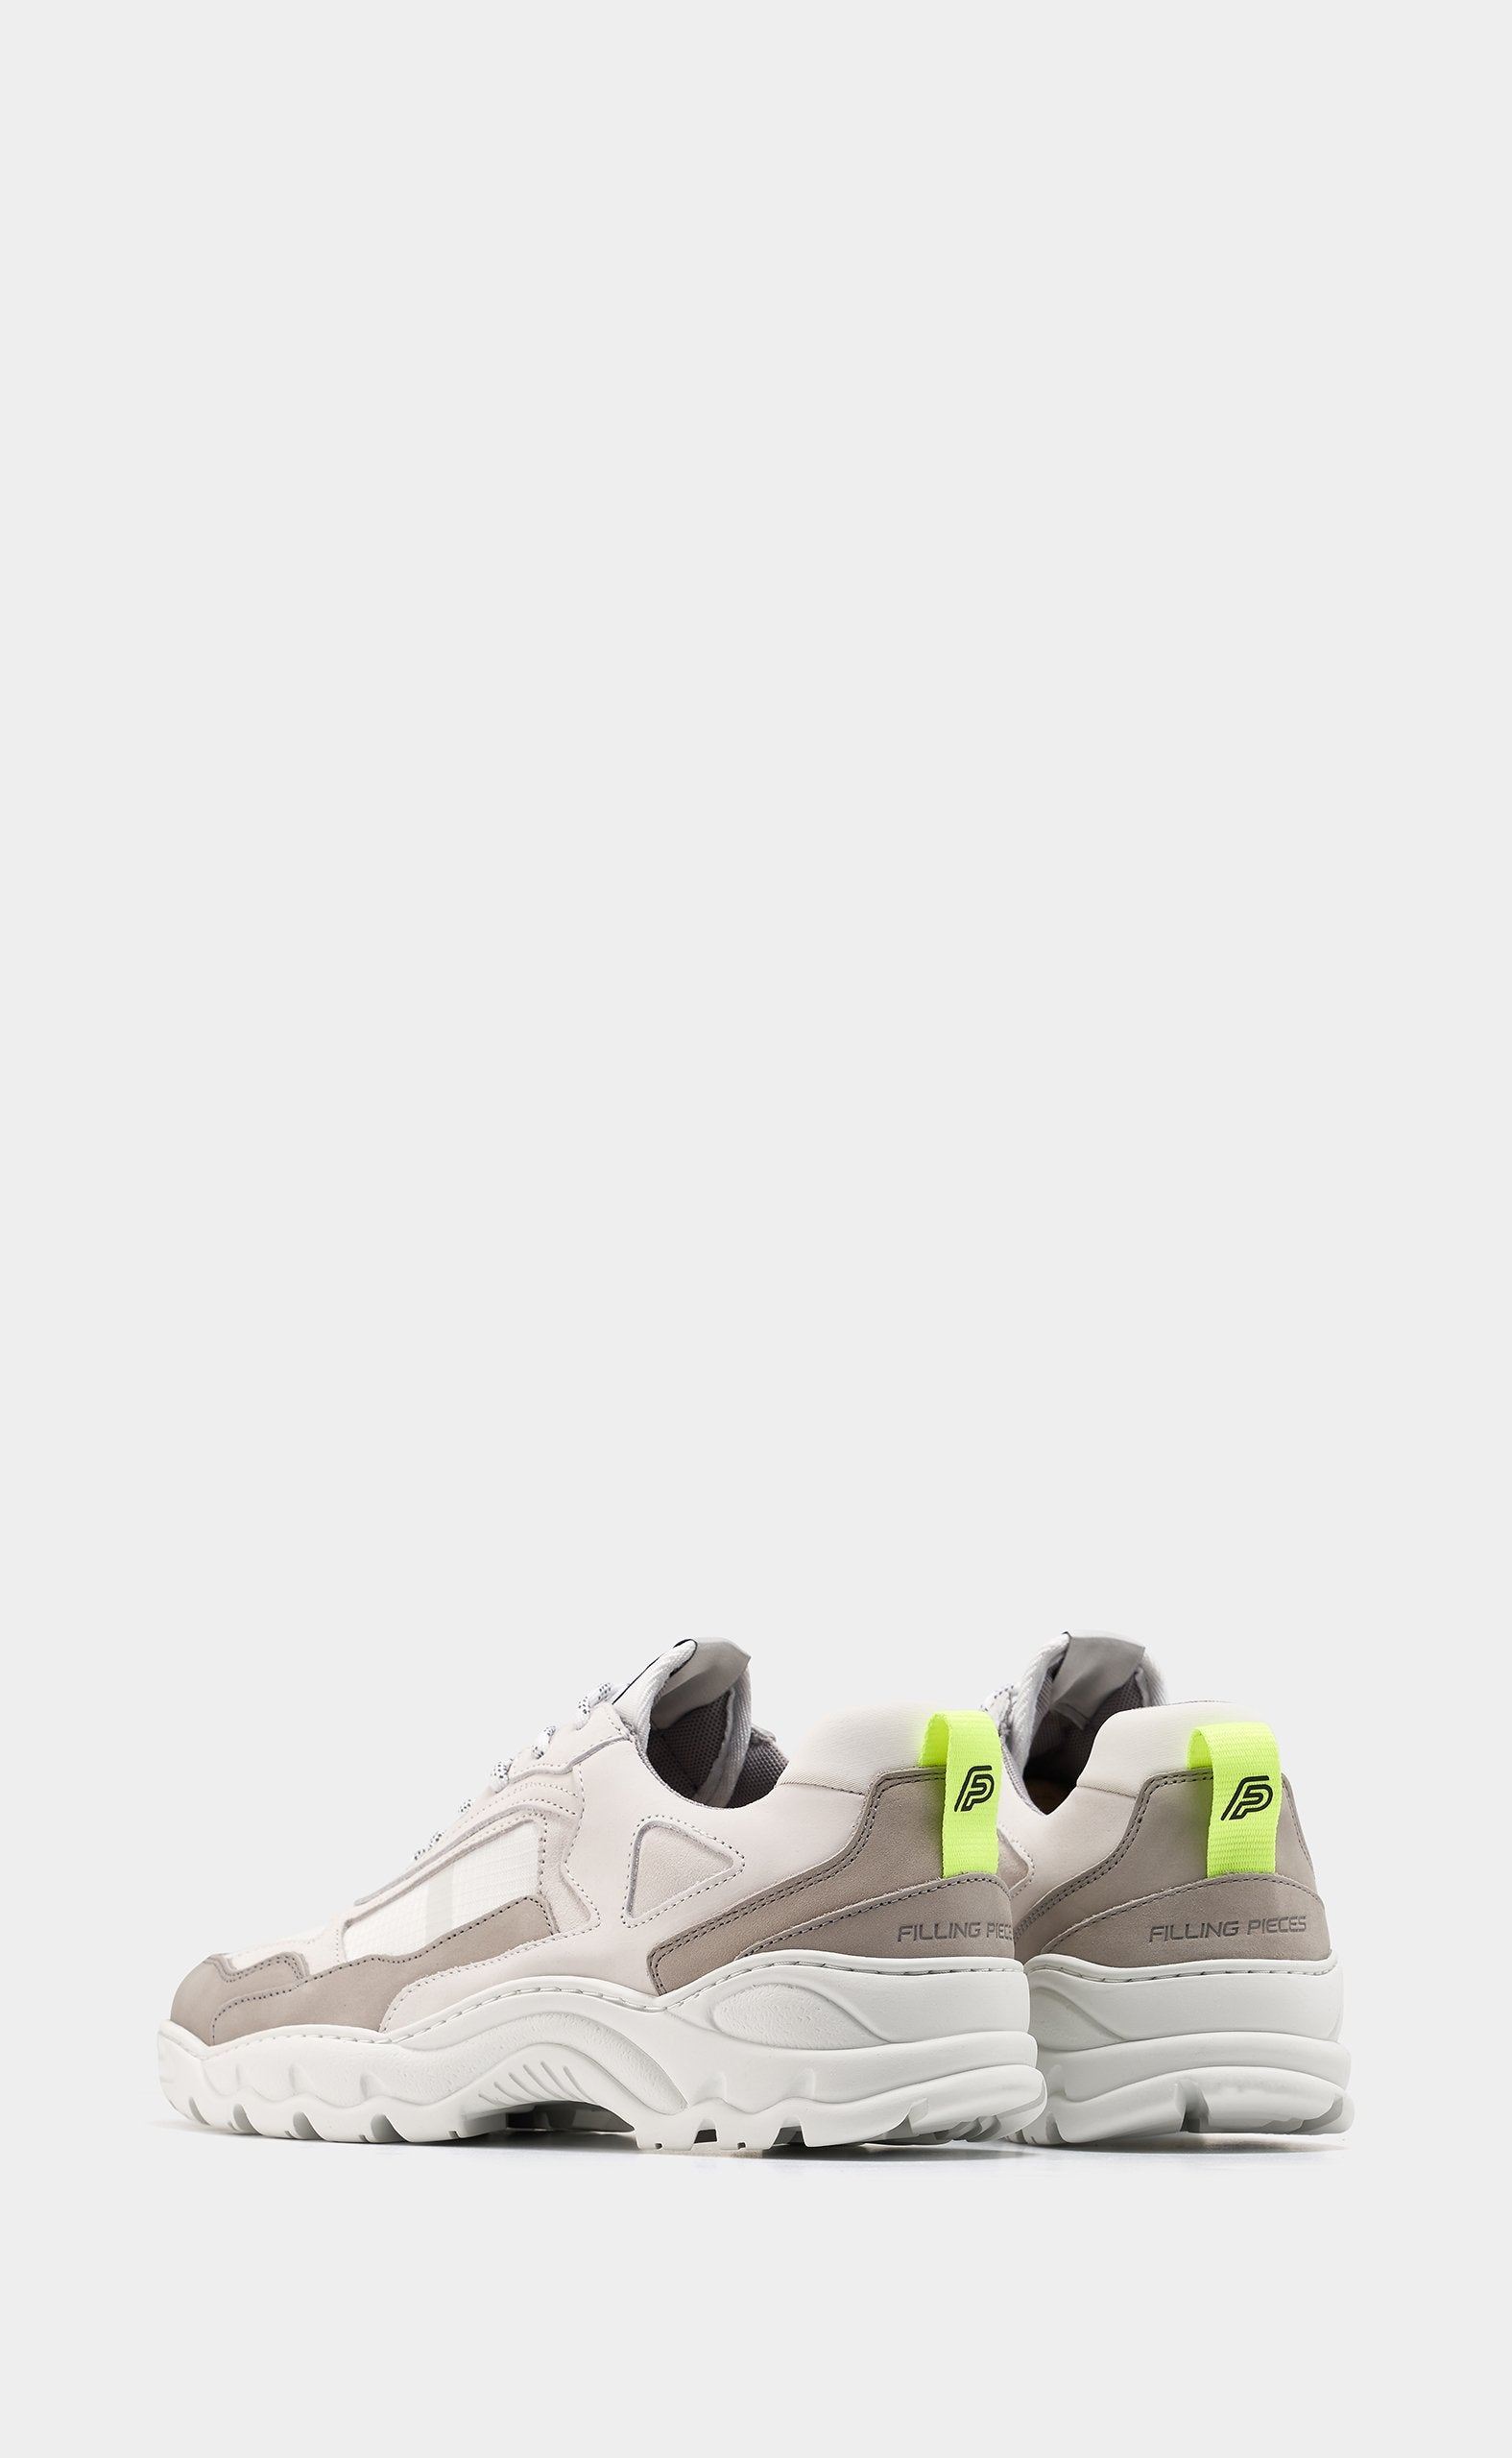 550e9c7fecbf Low Curve Iceman Trimix White - Filling Pieces